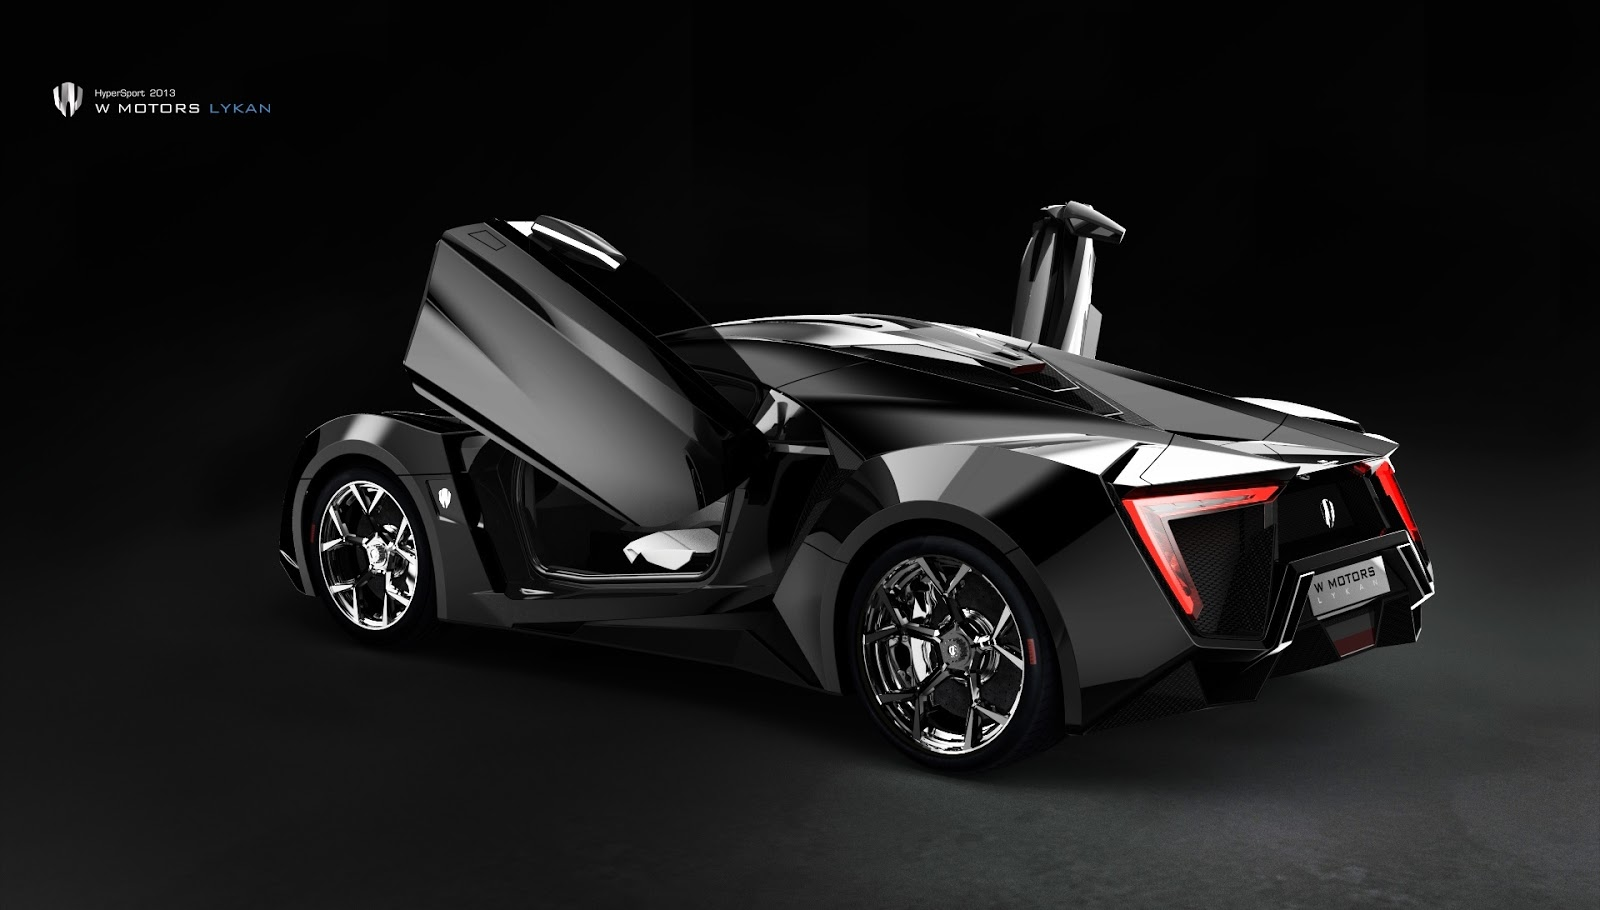 Lykan-HyperSport-2013_Black-Edition-OpenDoor-back_Top Cars 2015